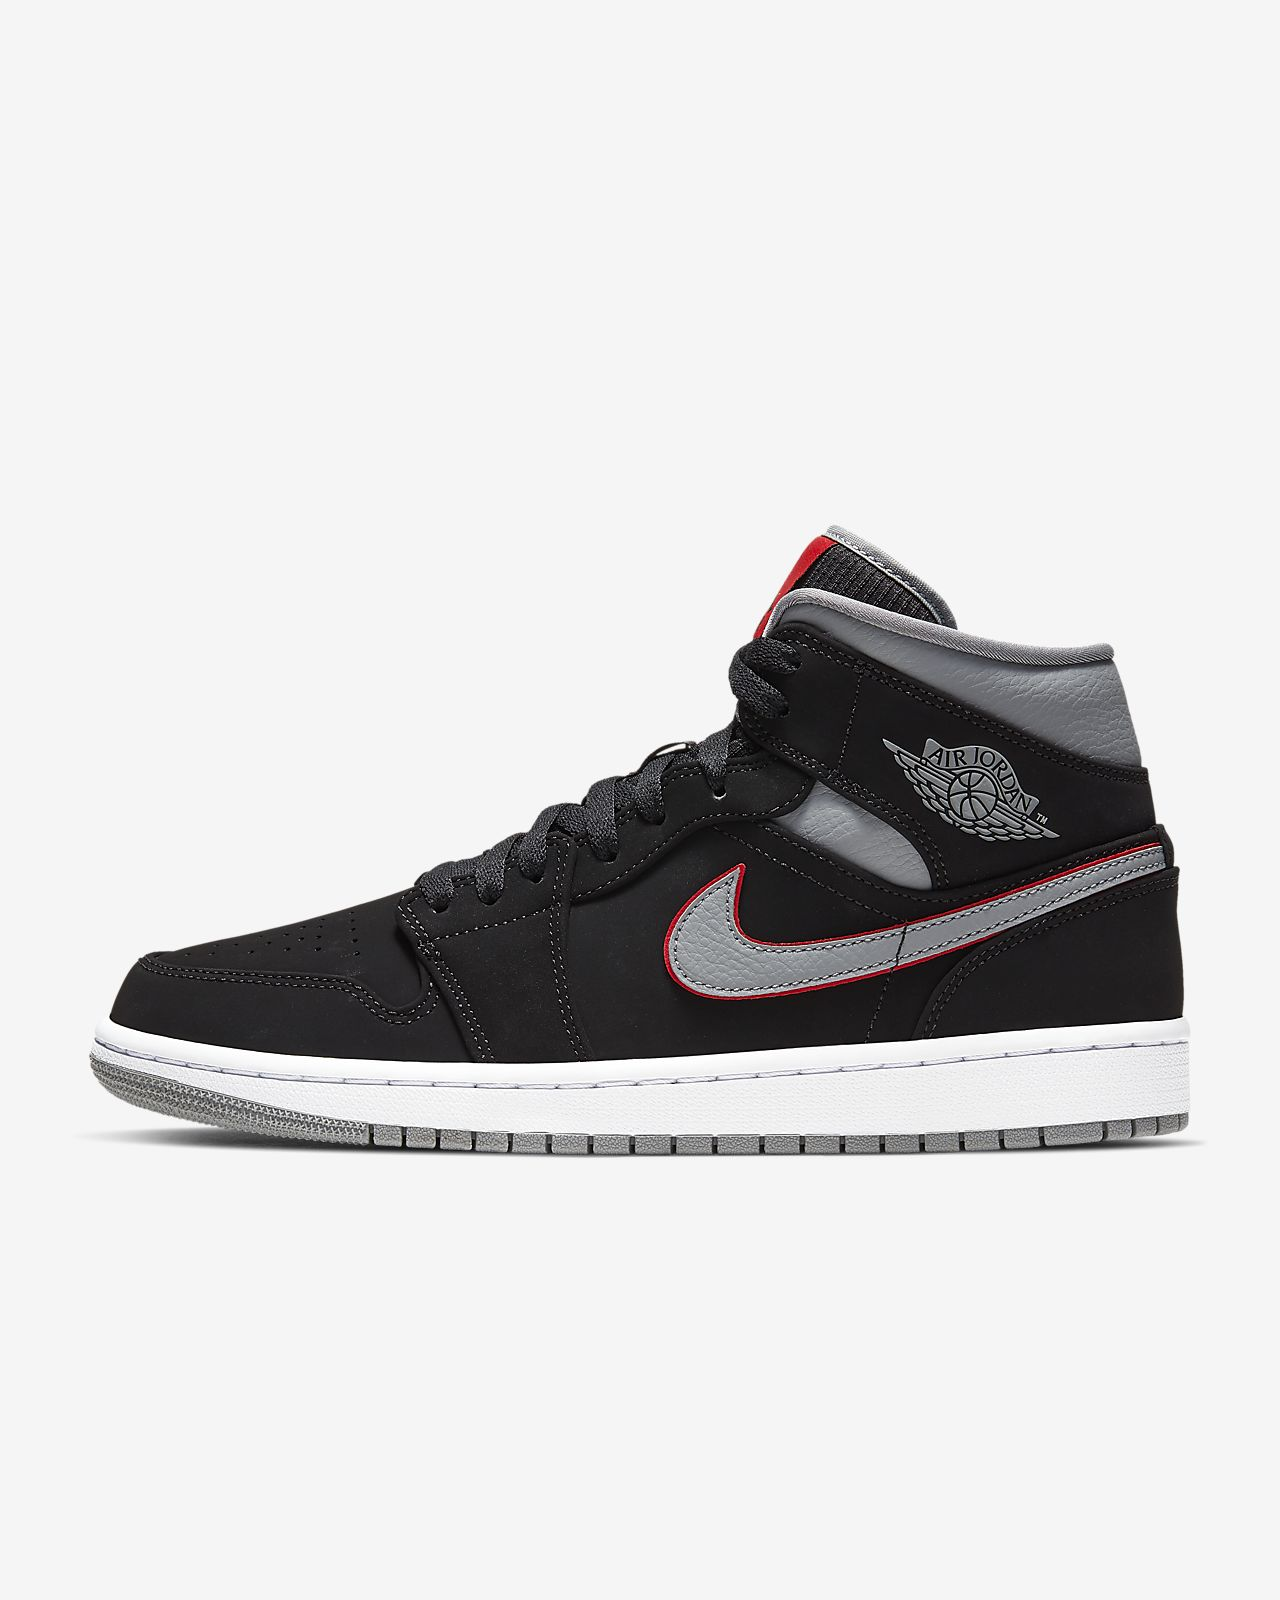 39f4e0eb487892 Air Jordan 1 Mid Men s Shoe. Nike.com CA